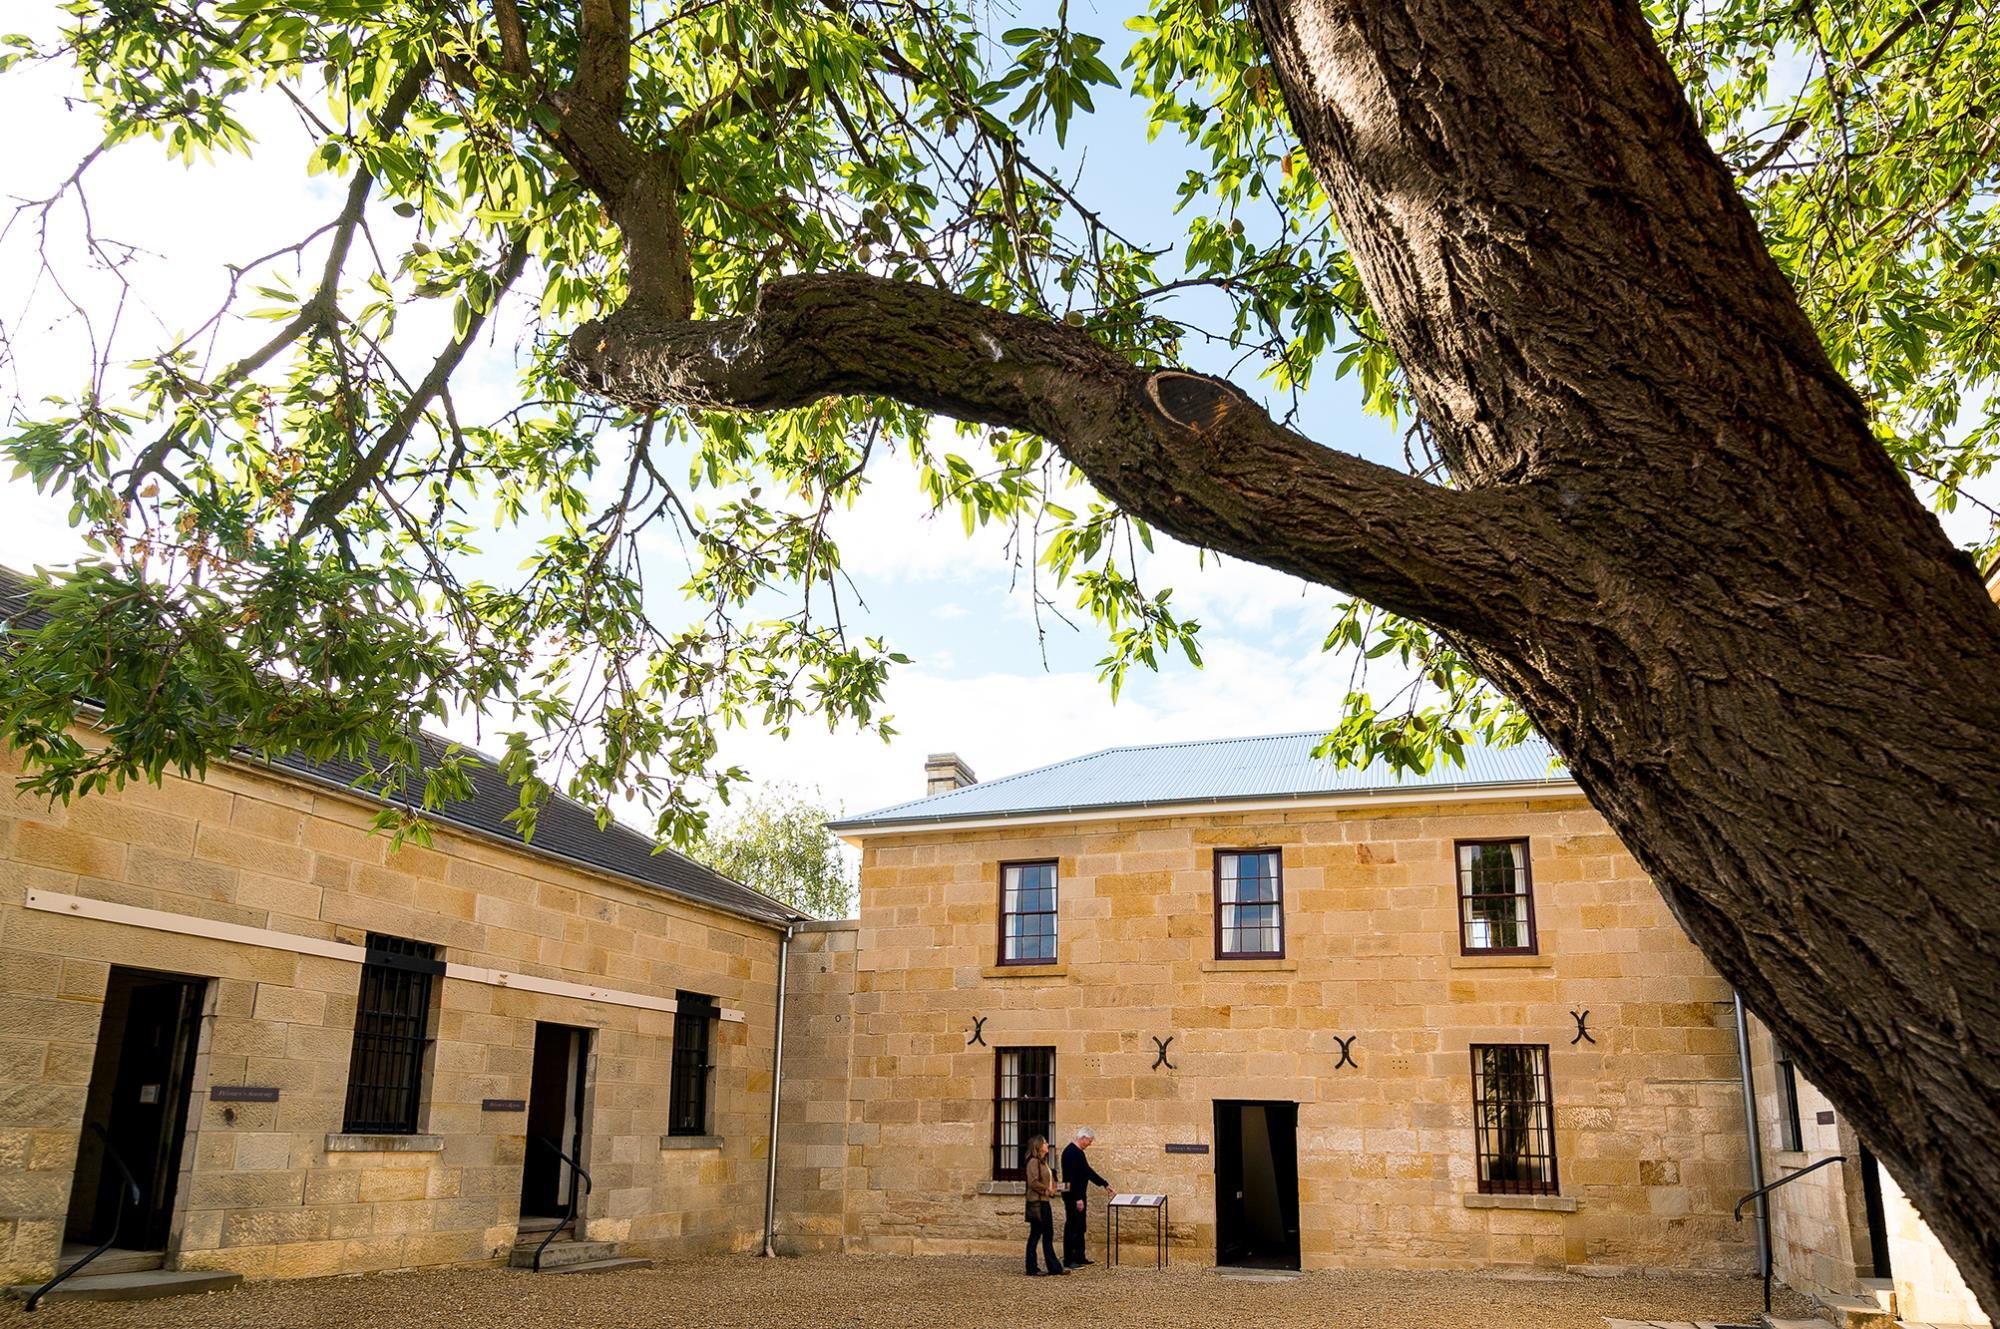 Richmond Gaol central courtyard, tree in foreground, historic buildings behind